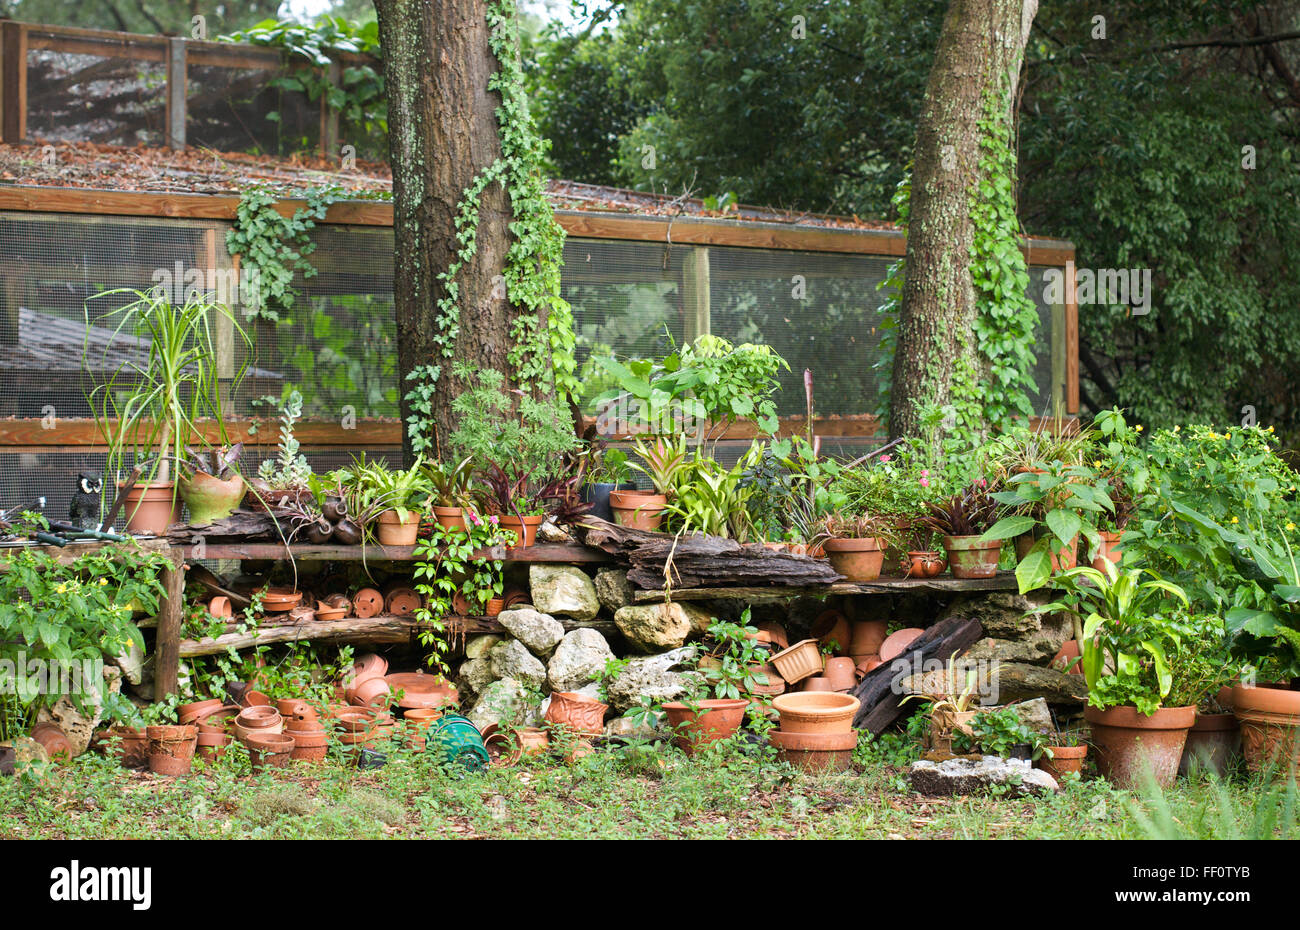 A shelf of terra cotta pots in a lush overgrown outdoor storage area. - Stock Image